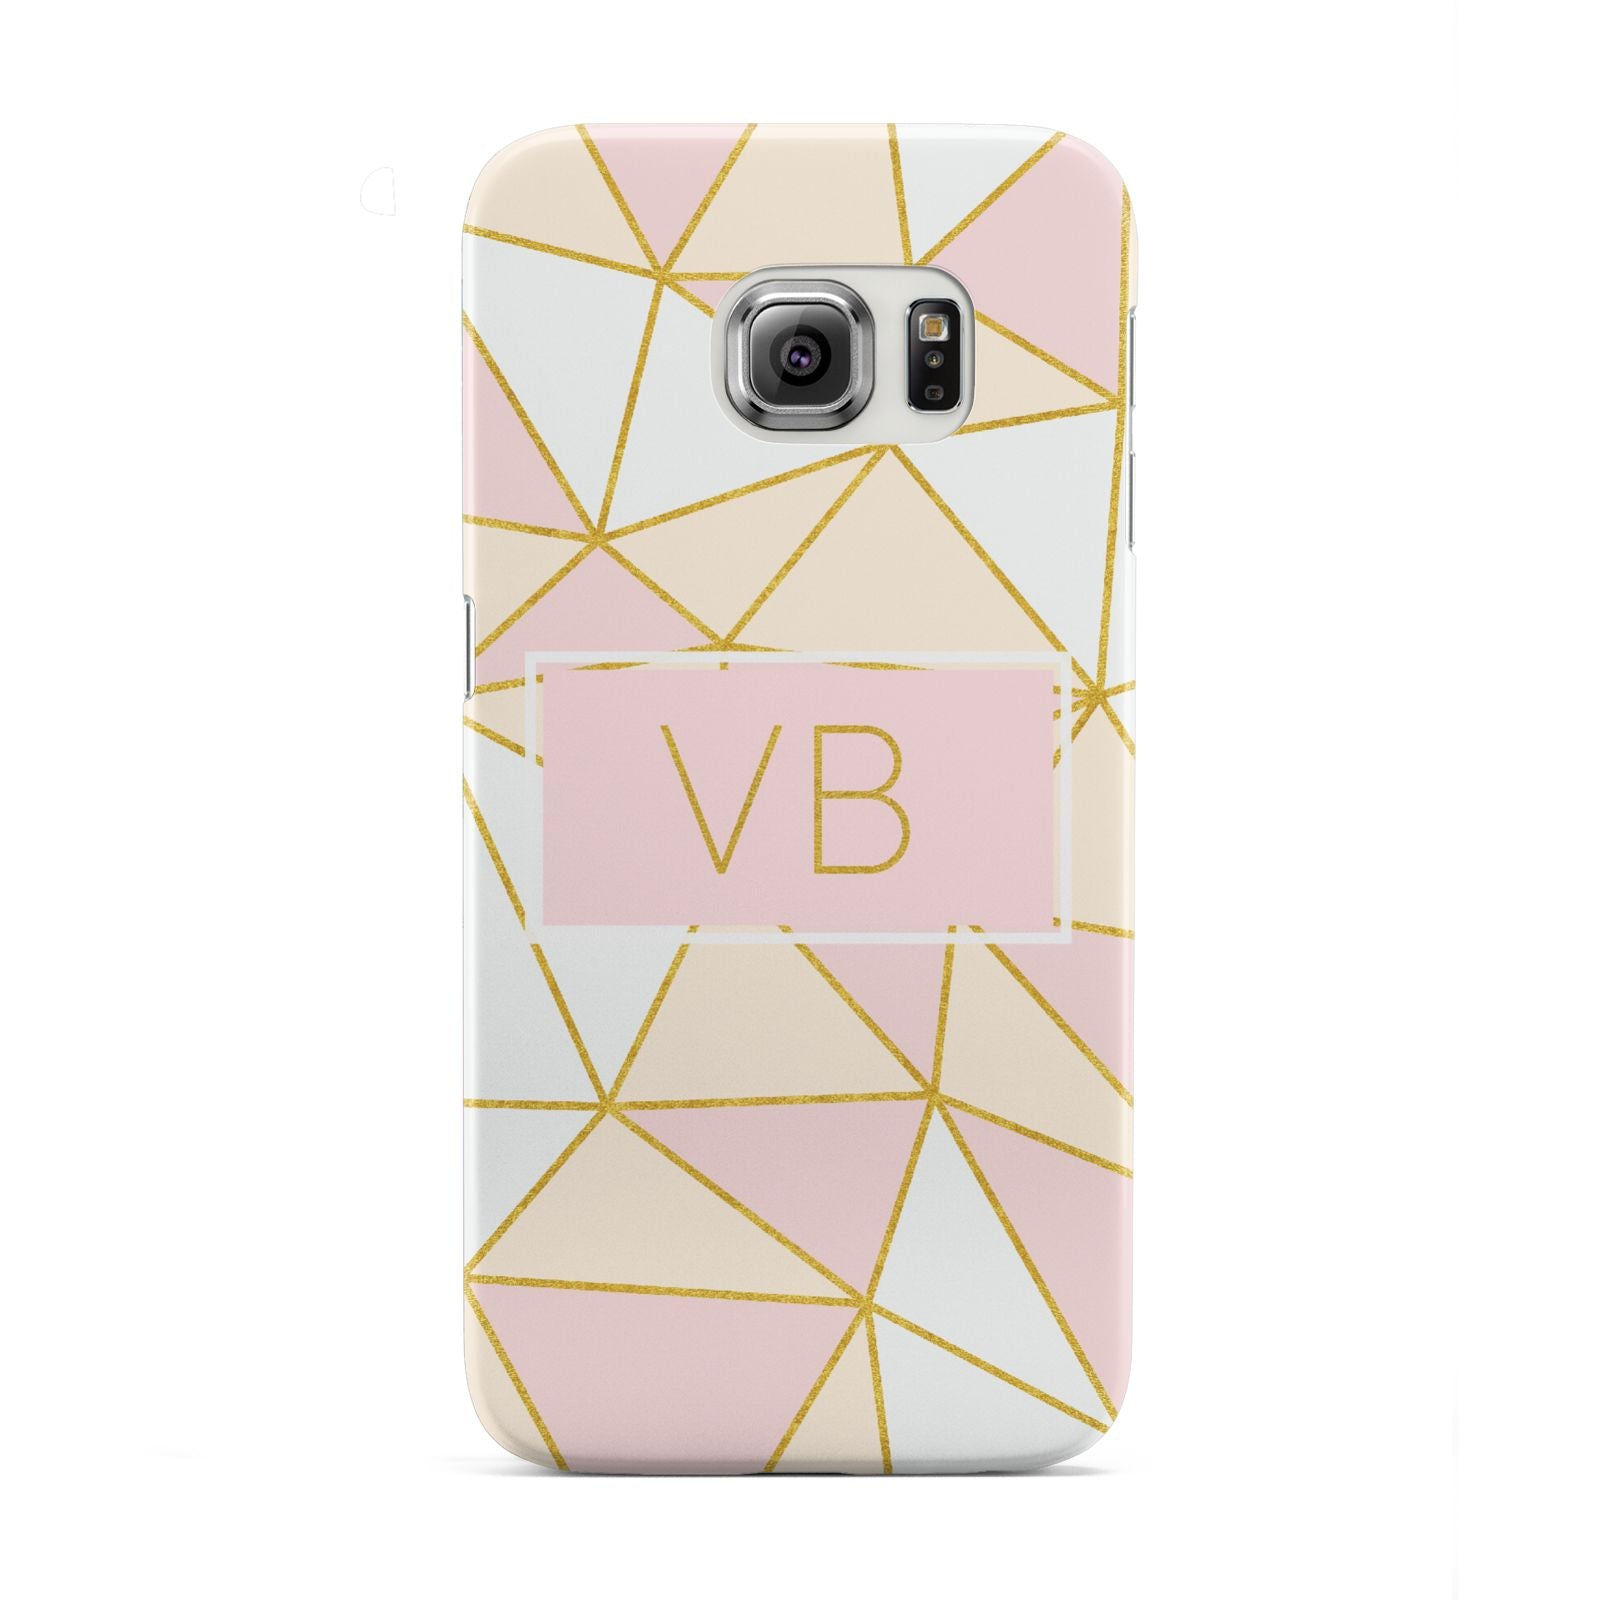 Personalised Gold Initials Geometric Samsung Galaxy S6 Edge Case